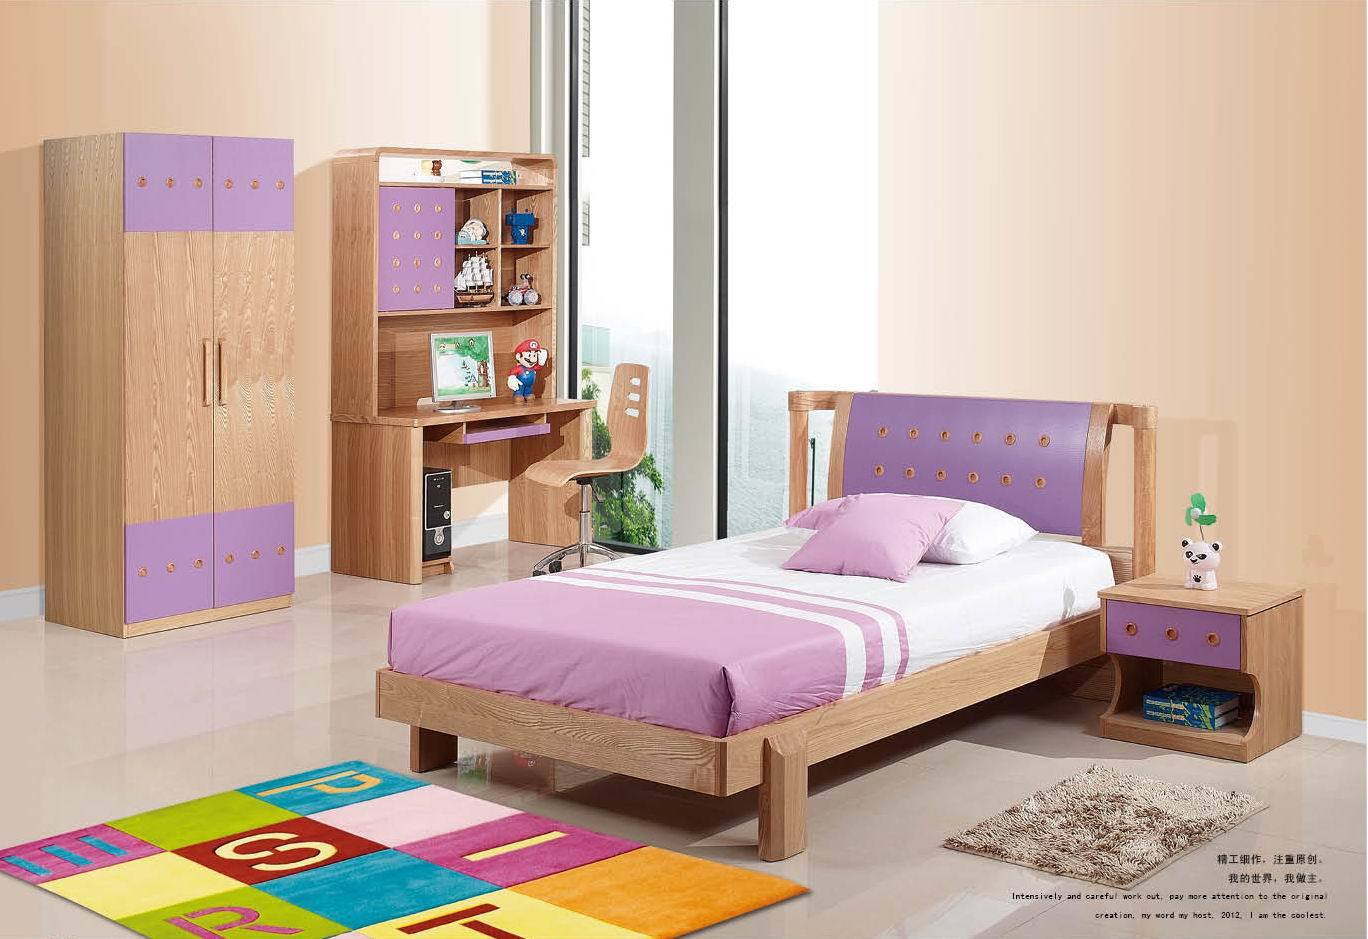 China kids bedroom set jkd 20130 china kids bedroom for Youth bedroom furniture sets